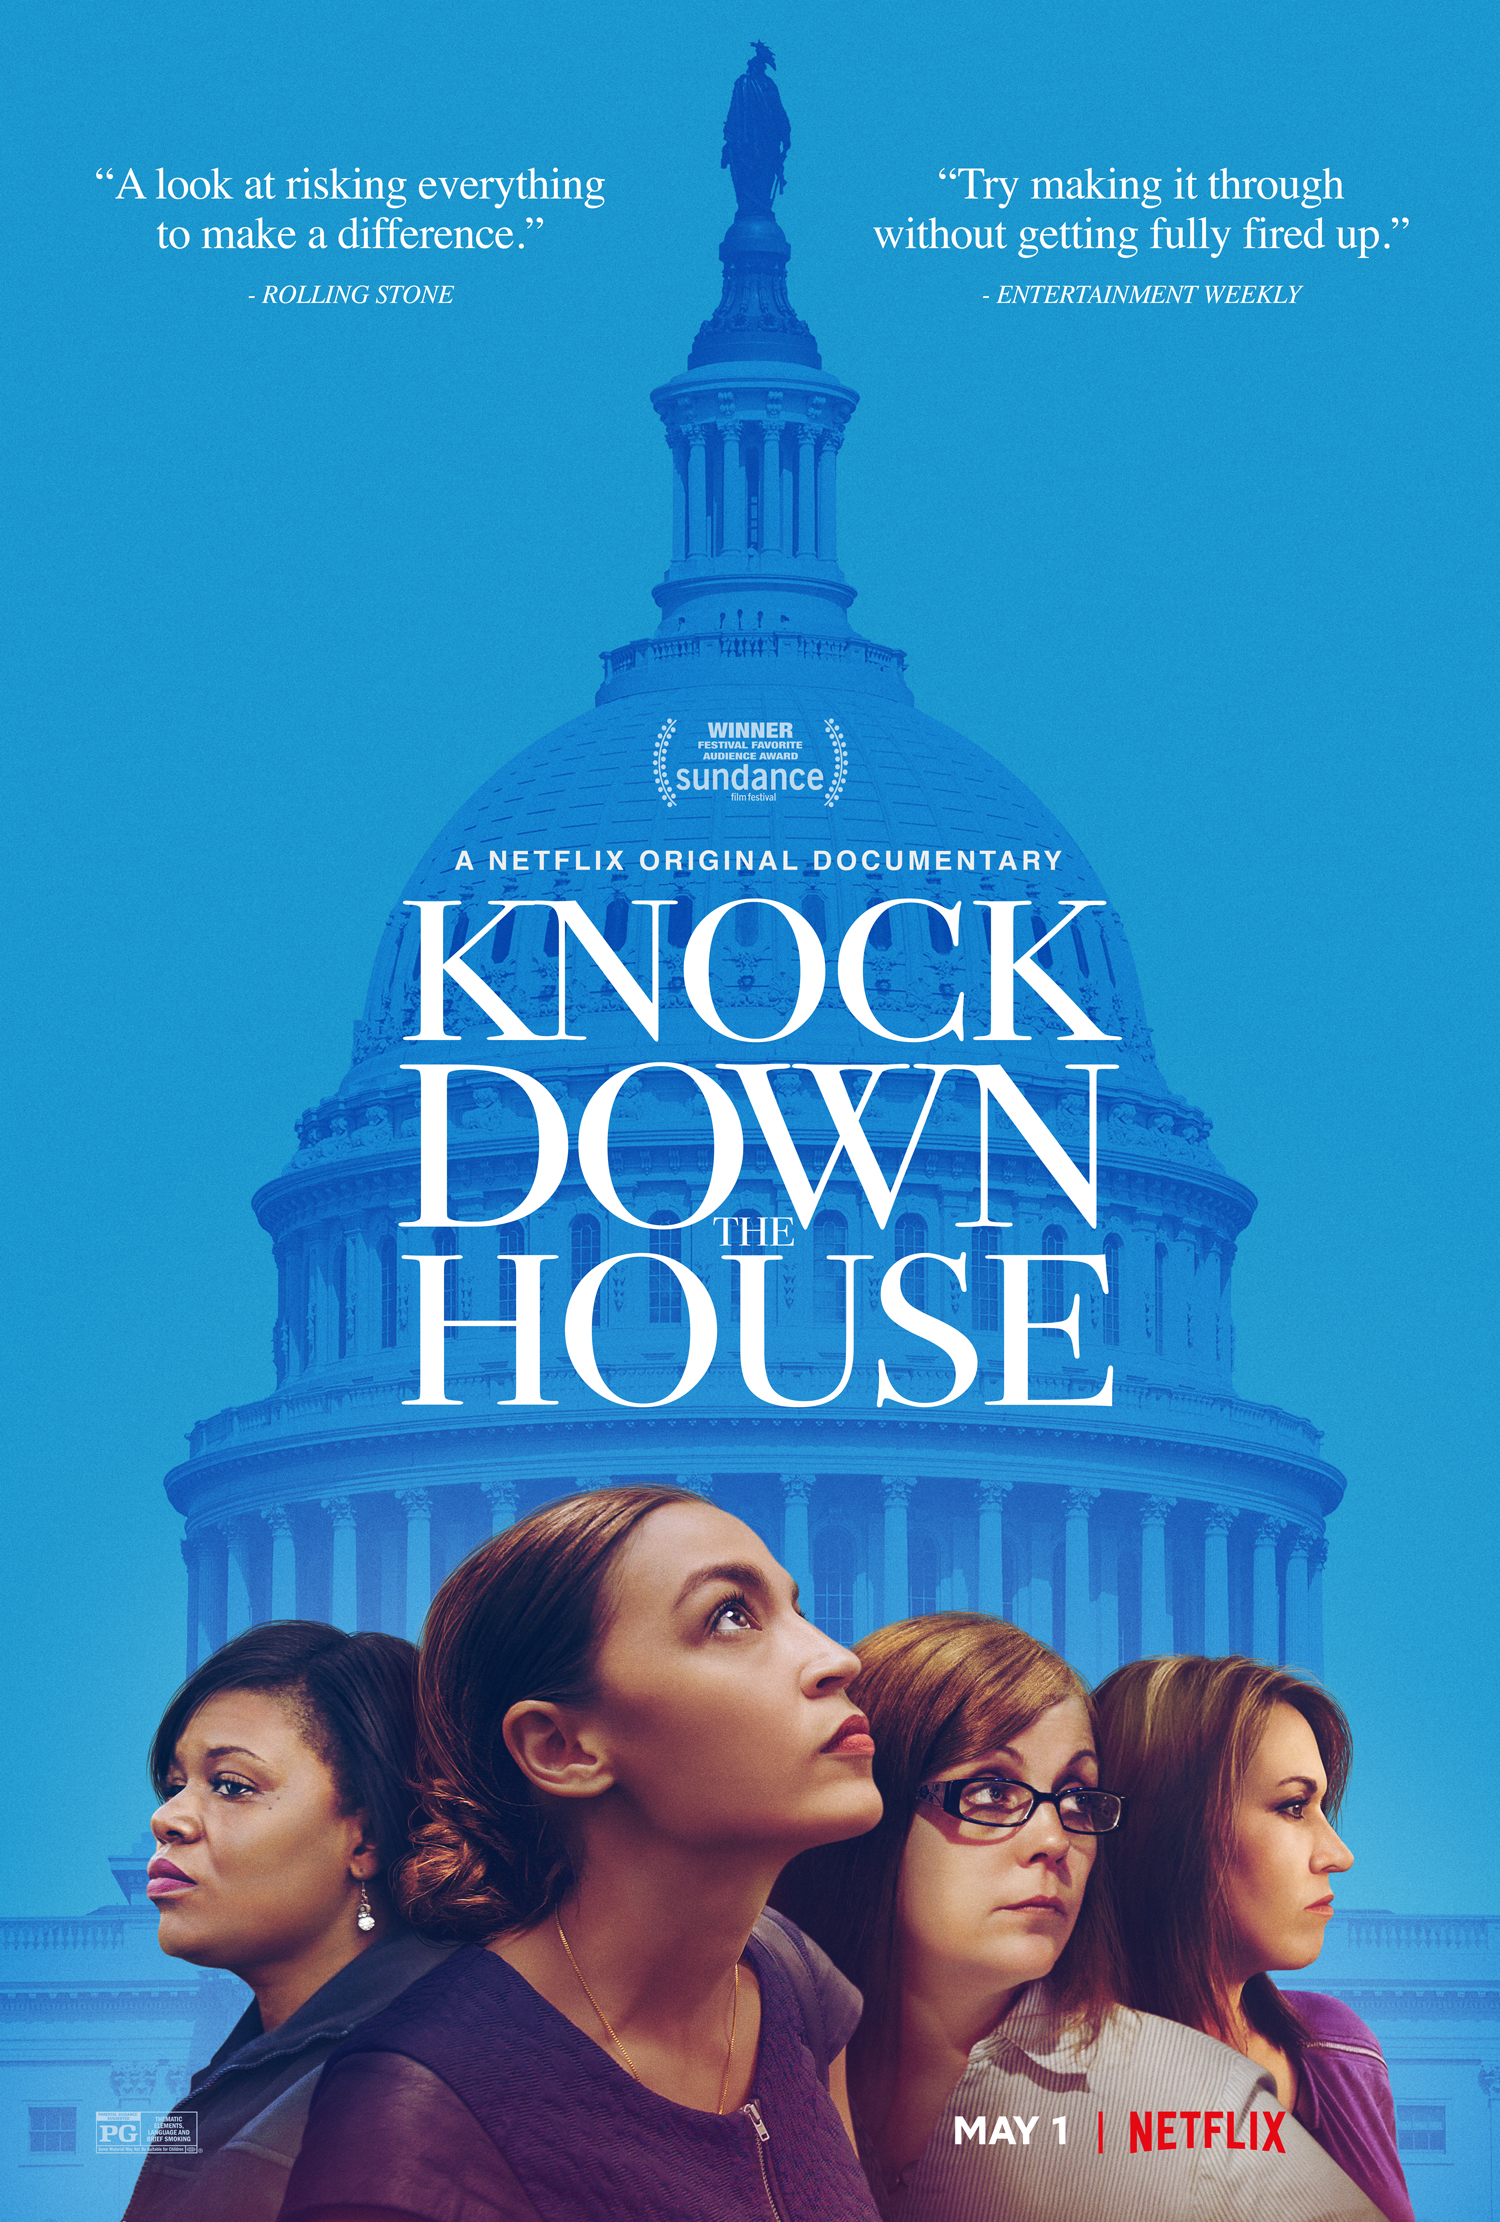 knock down the house - OVERVIEW: In 2018, a young bartender in the Bronx (Alexandria Ocasio-Cortez), a coal miner's daughter in West Virginia, a grieving mother in Nevada and a registered nurse in Missouri join a movement of insurgent candidates challenging powerful incumbents in Congress.FILMMAKER: A film by Rachel Lears, director of The Hand That Feeds and Aves De Paso.WINNER: Sundance Film FestivalPRESS: Rolling Stone, The New York Times, Variety, The Wrap, Vox